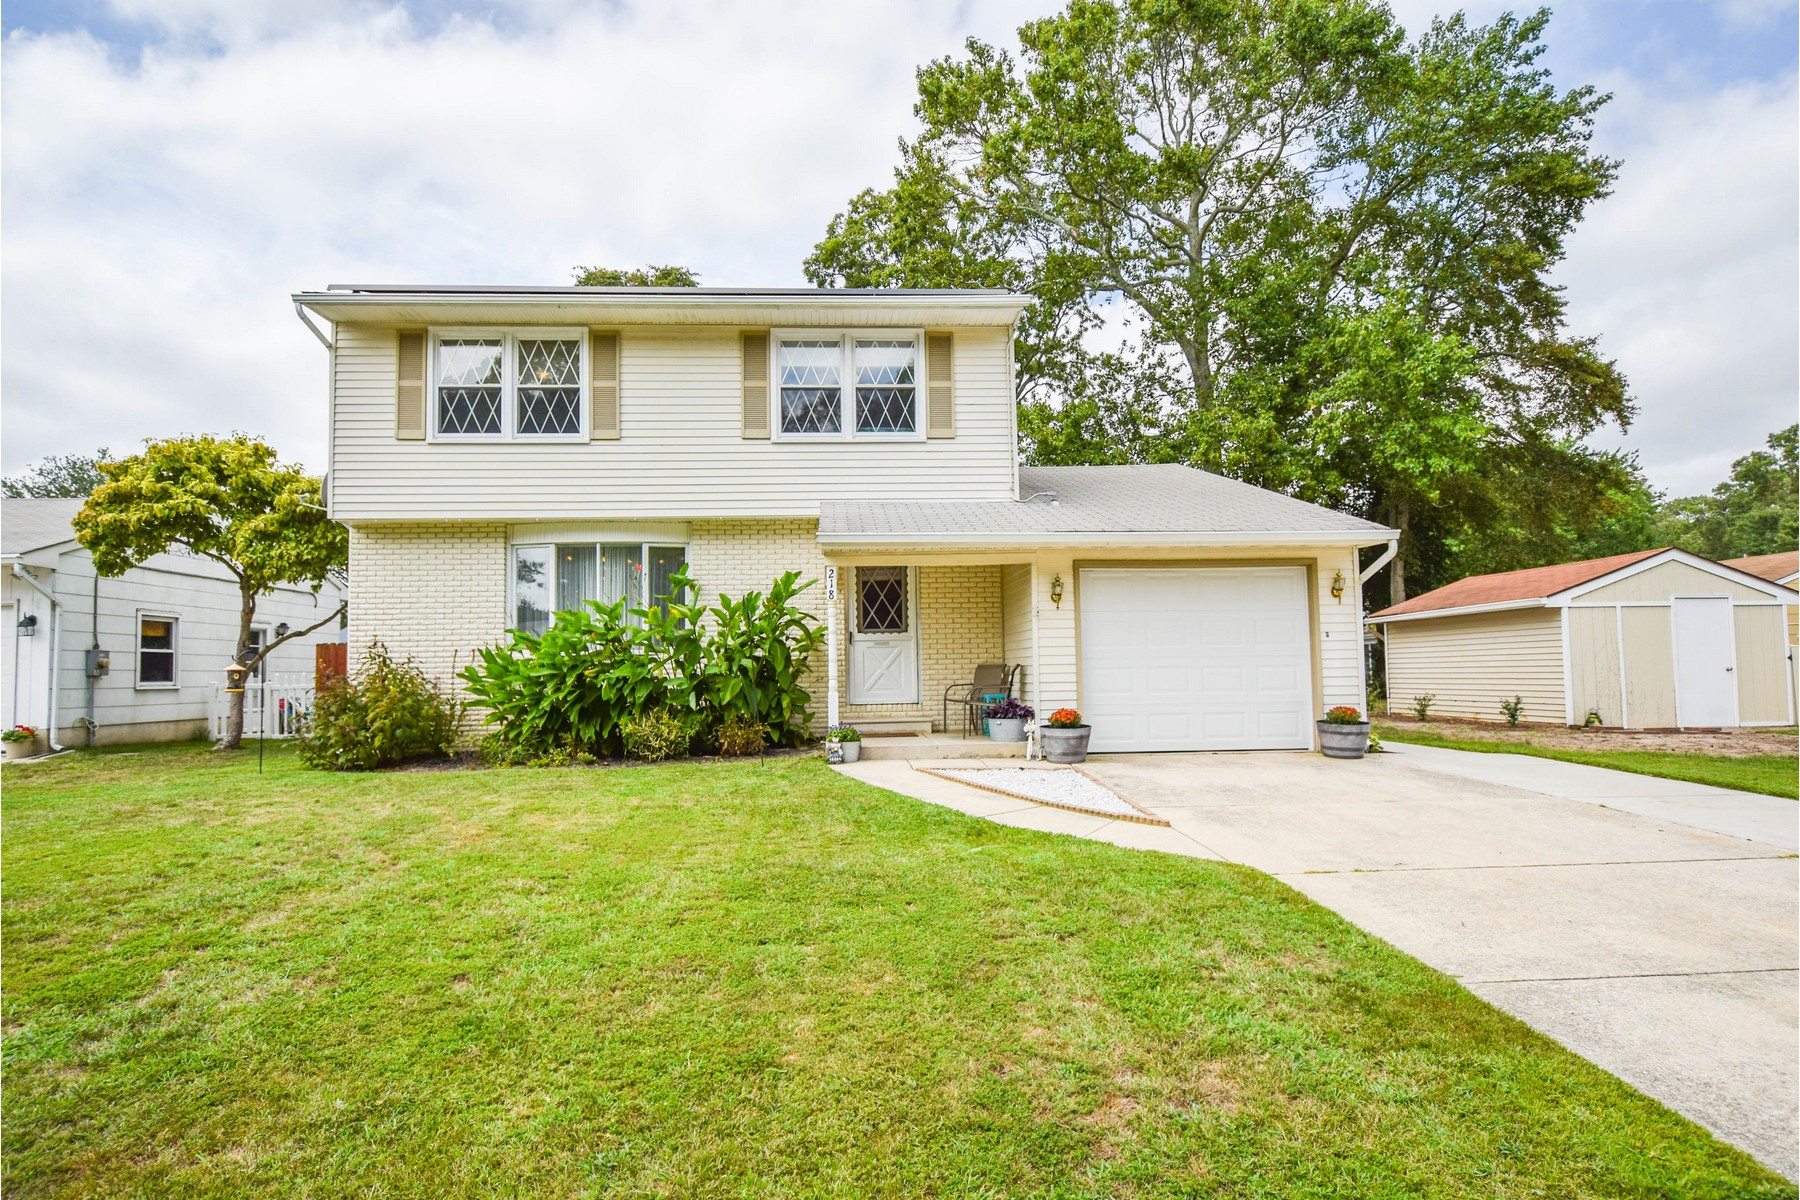 Single Family Homes for Sale at Cute Well Maintained Home 218 Deborah Lane North Cape May, New Jersey 08204 United States